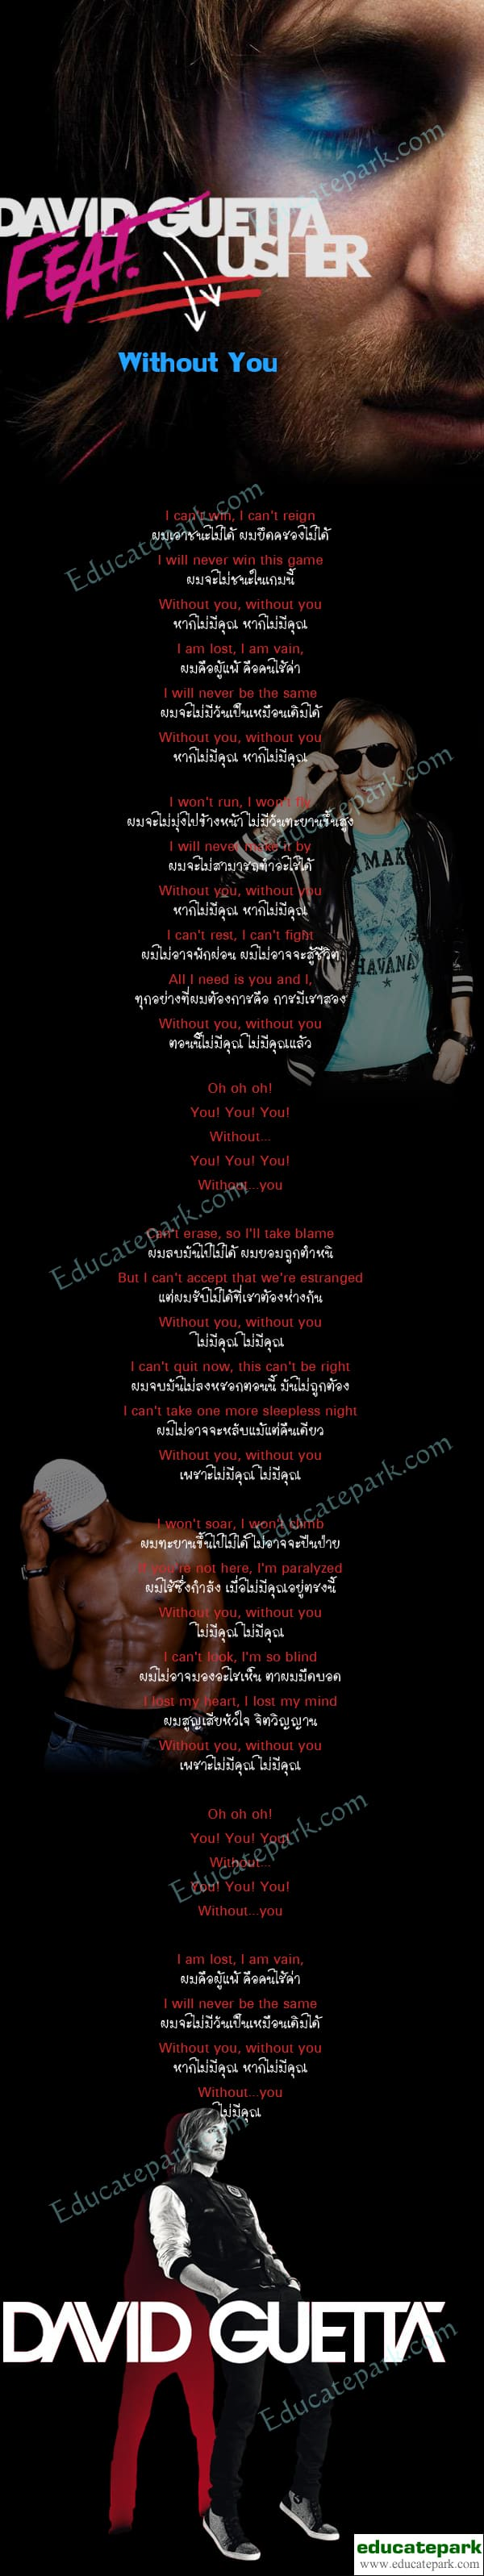 แปลเพลง Without You - David Guetta ft. Usher